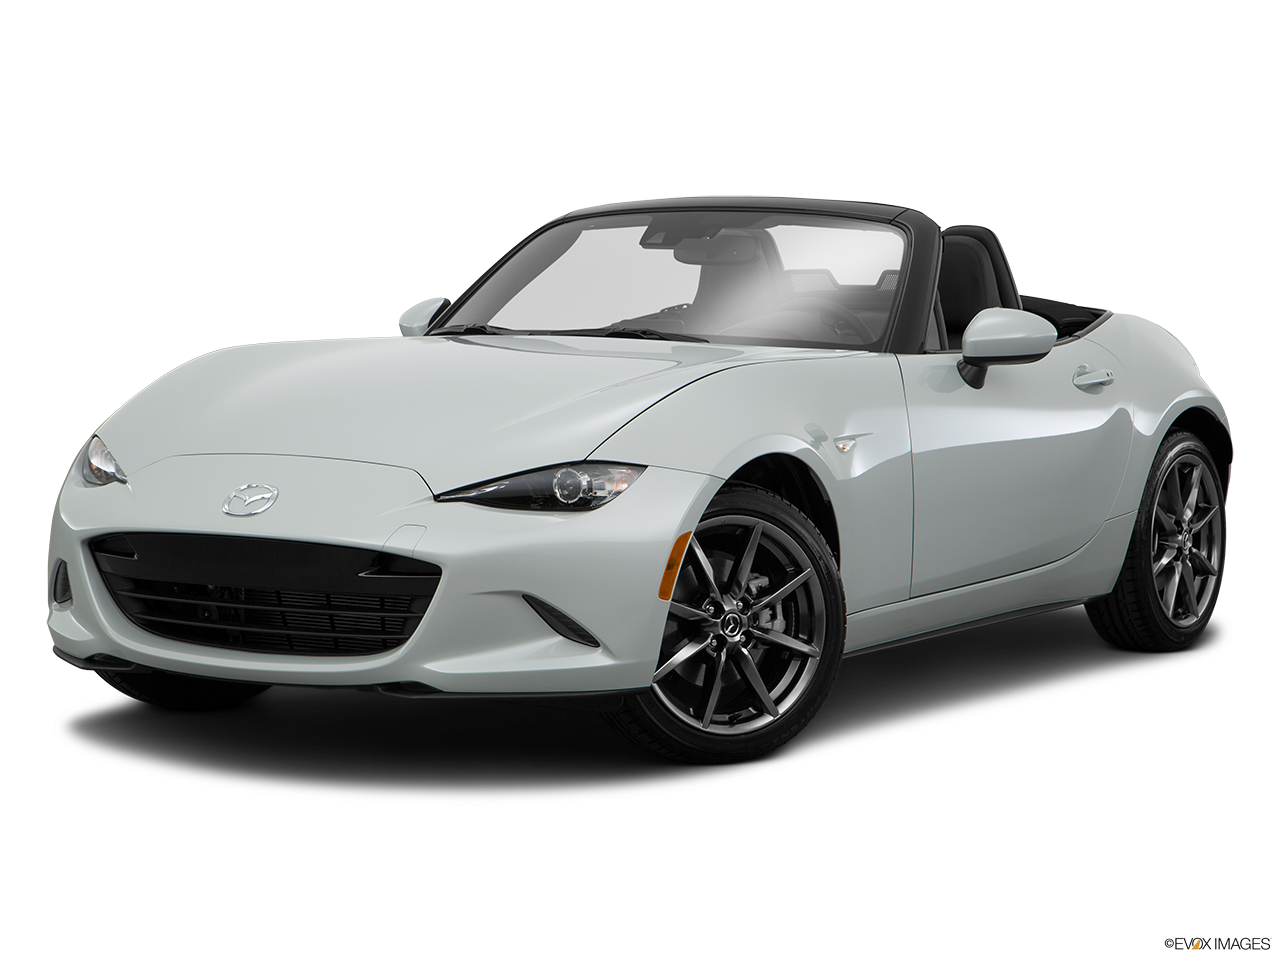 Test Drive A 2016 Mazda MX-5 Miata at Galpin Mazda in Los Angeles